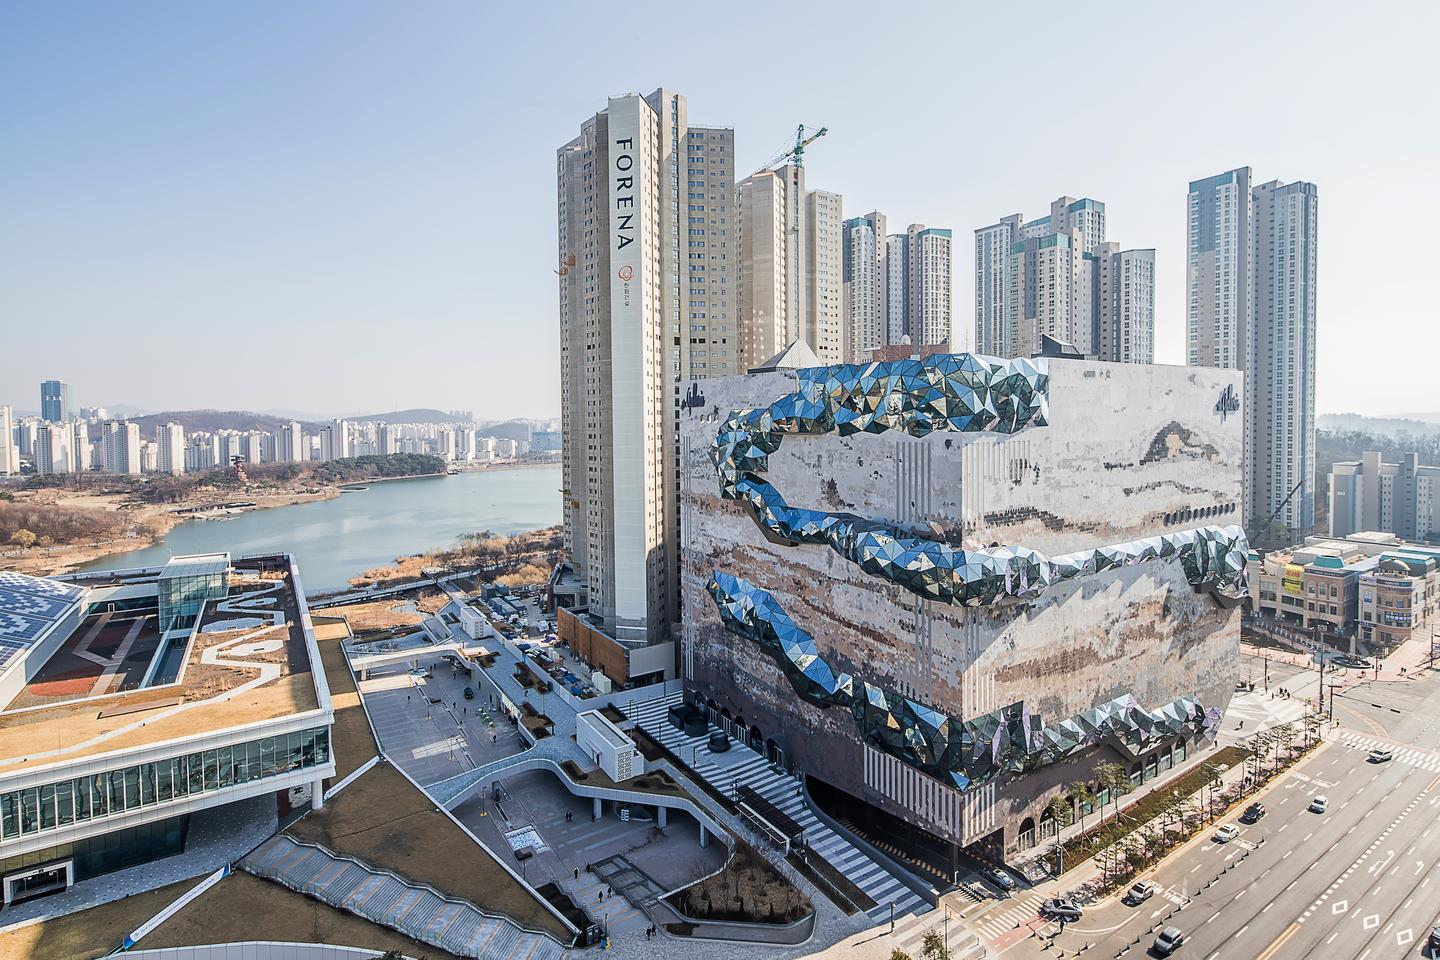 Galleria in Gwanggyo is located in Gwanggyo, south of South Korea's capital Seoul, in a burgeoning district dominated by residential towers